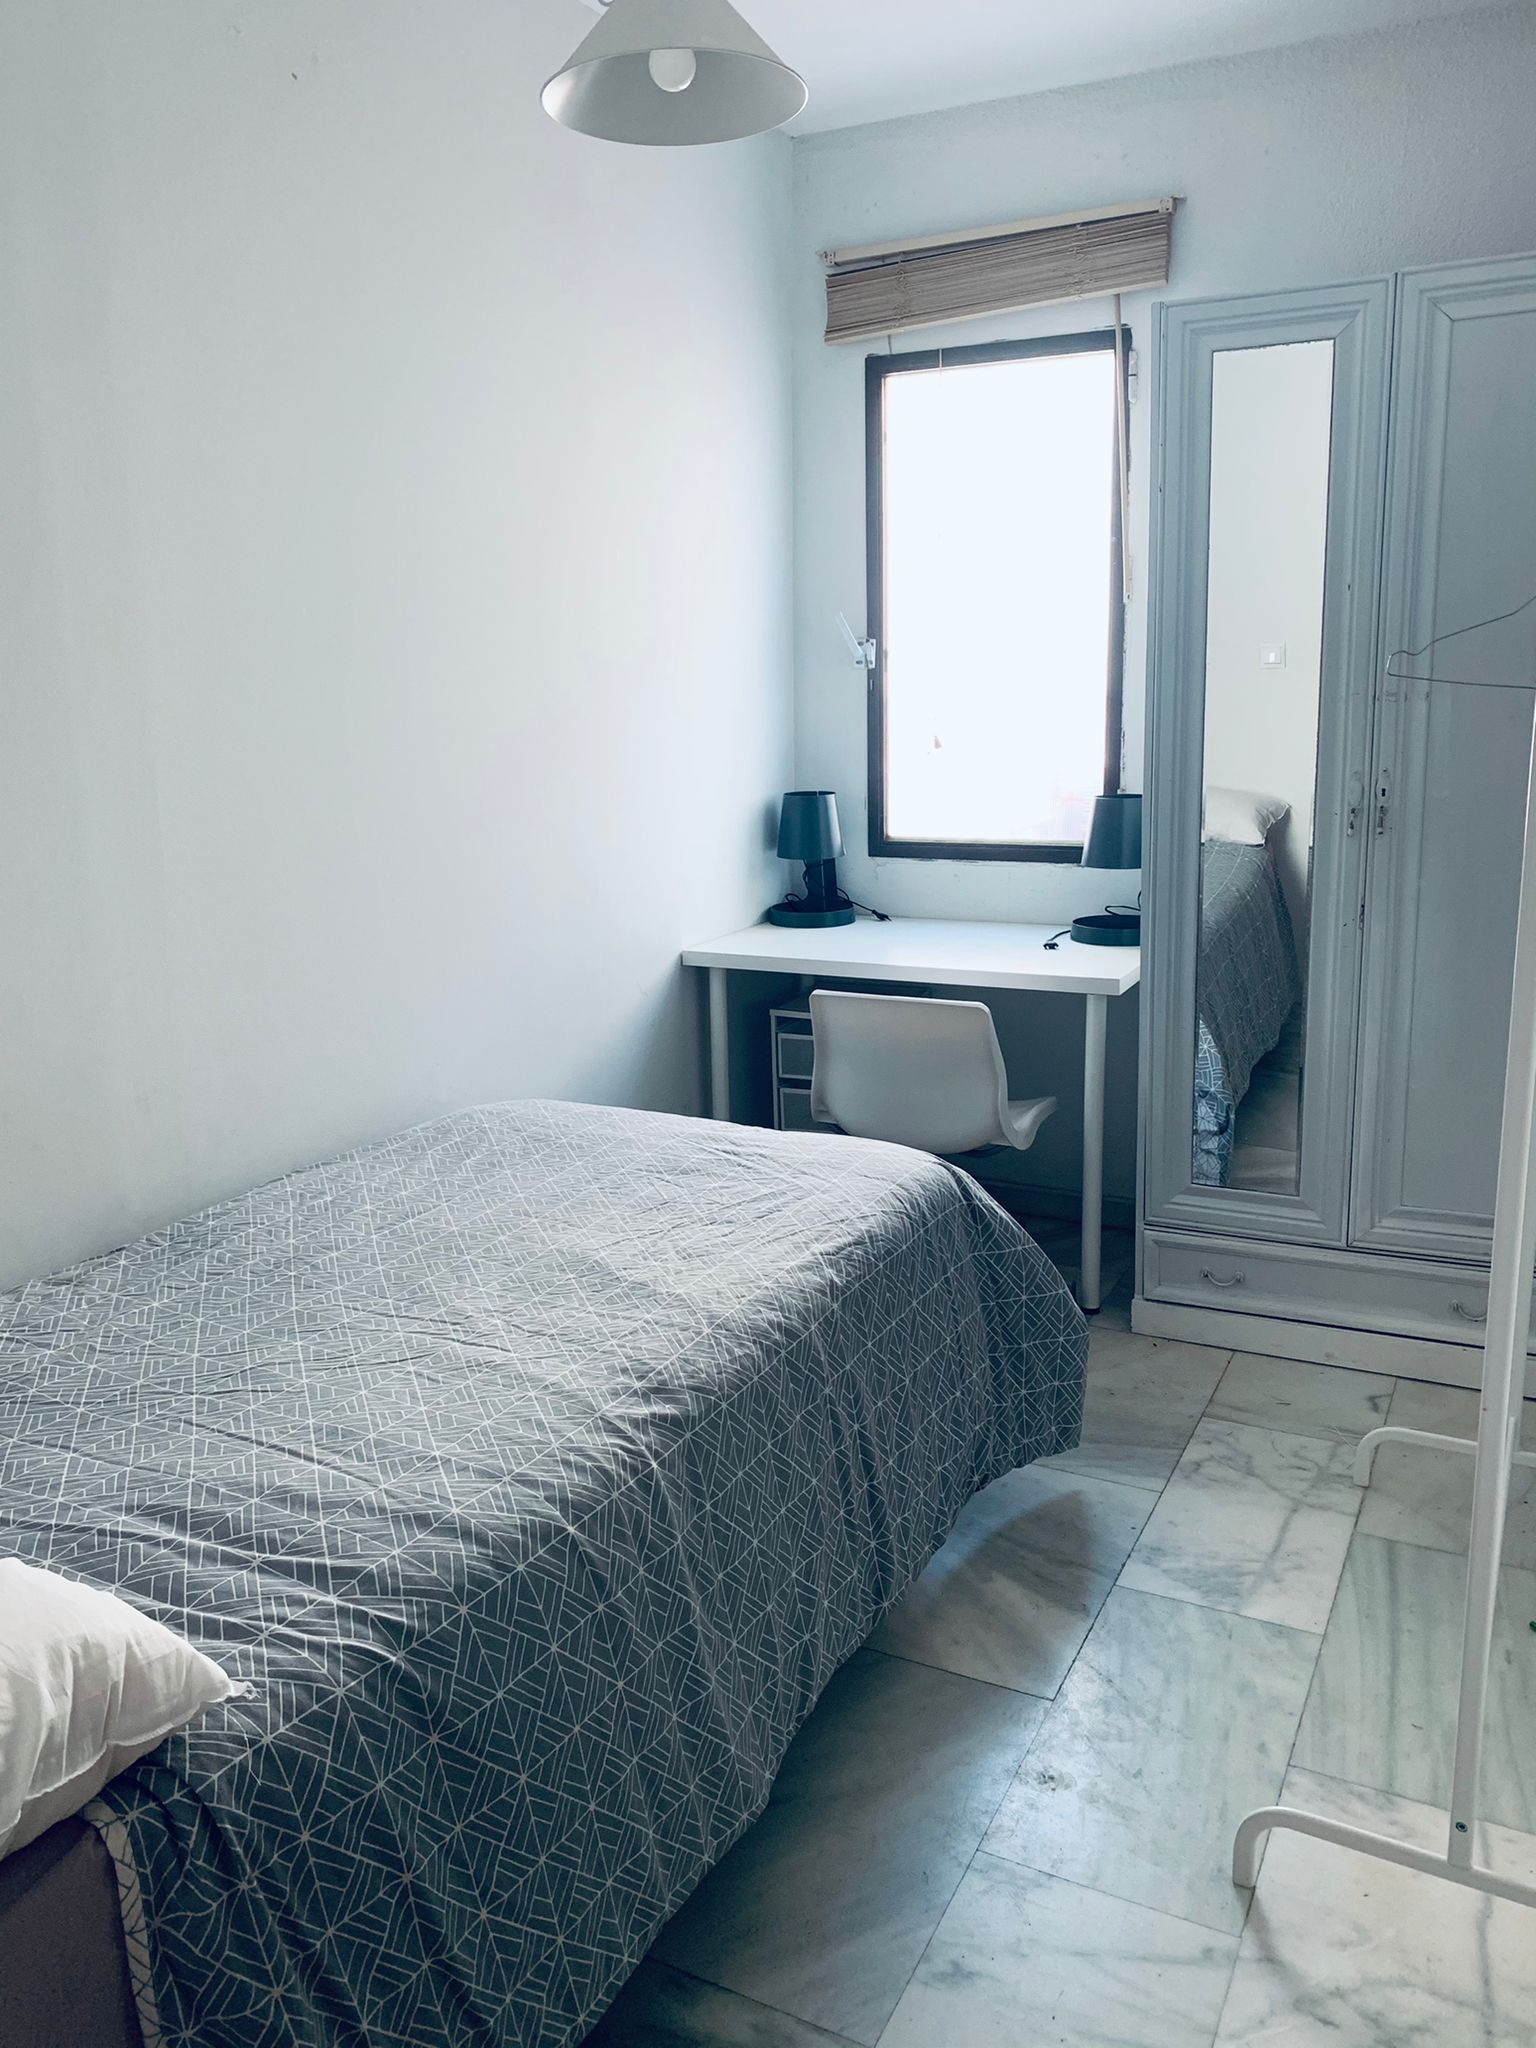 Single room in the city center .